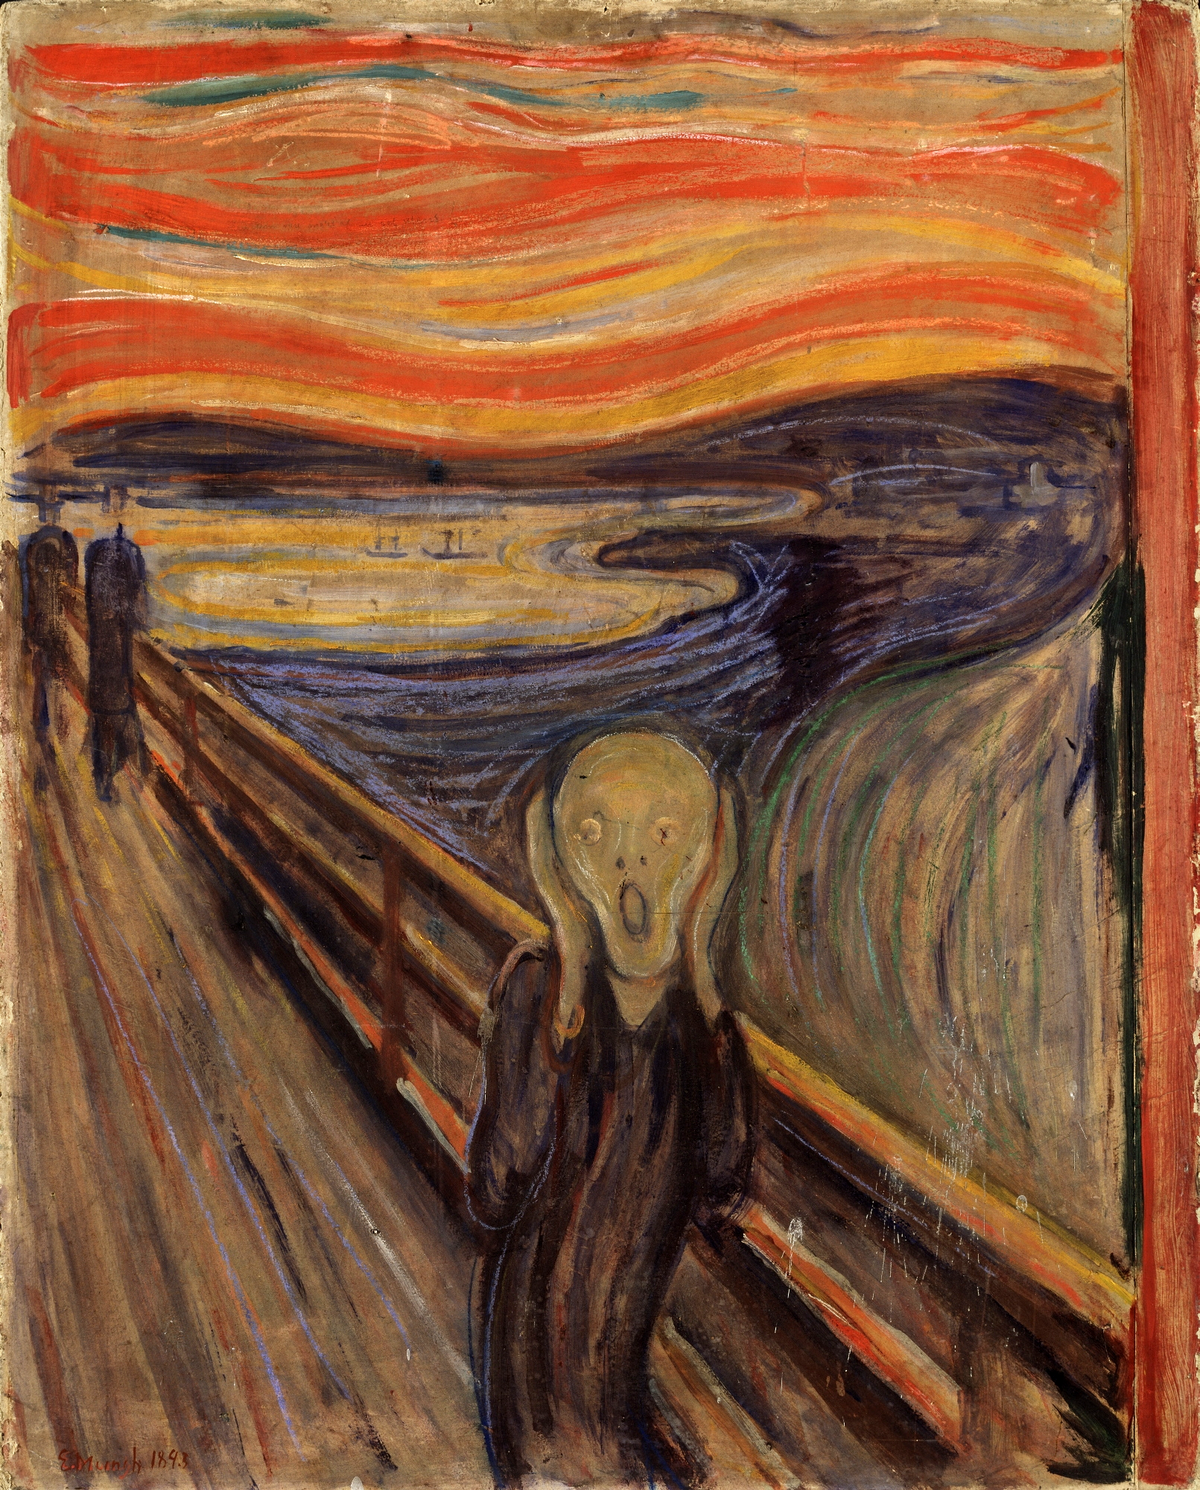 The_Scream_by_Edvard_Munch,_1893_-_Nasjonalgalleriet